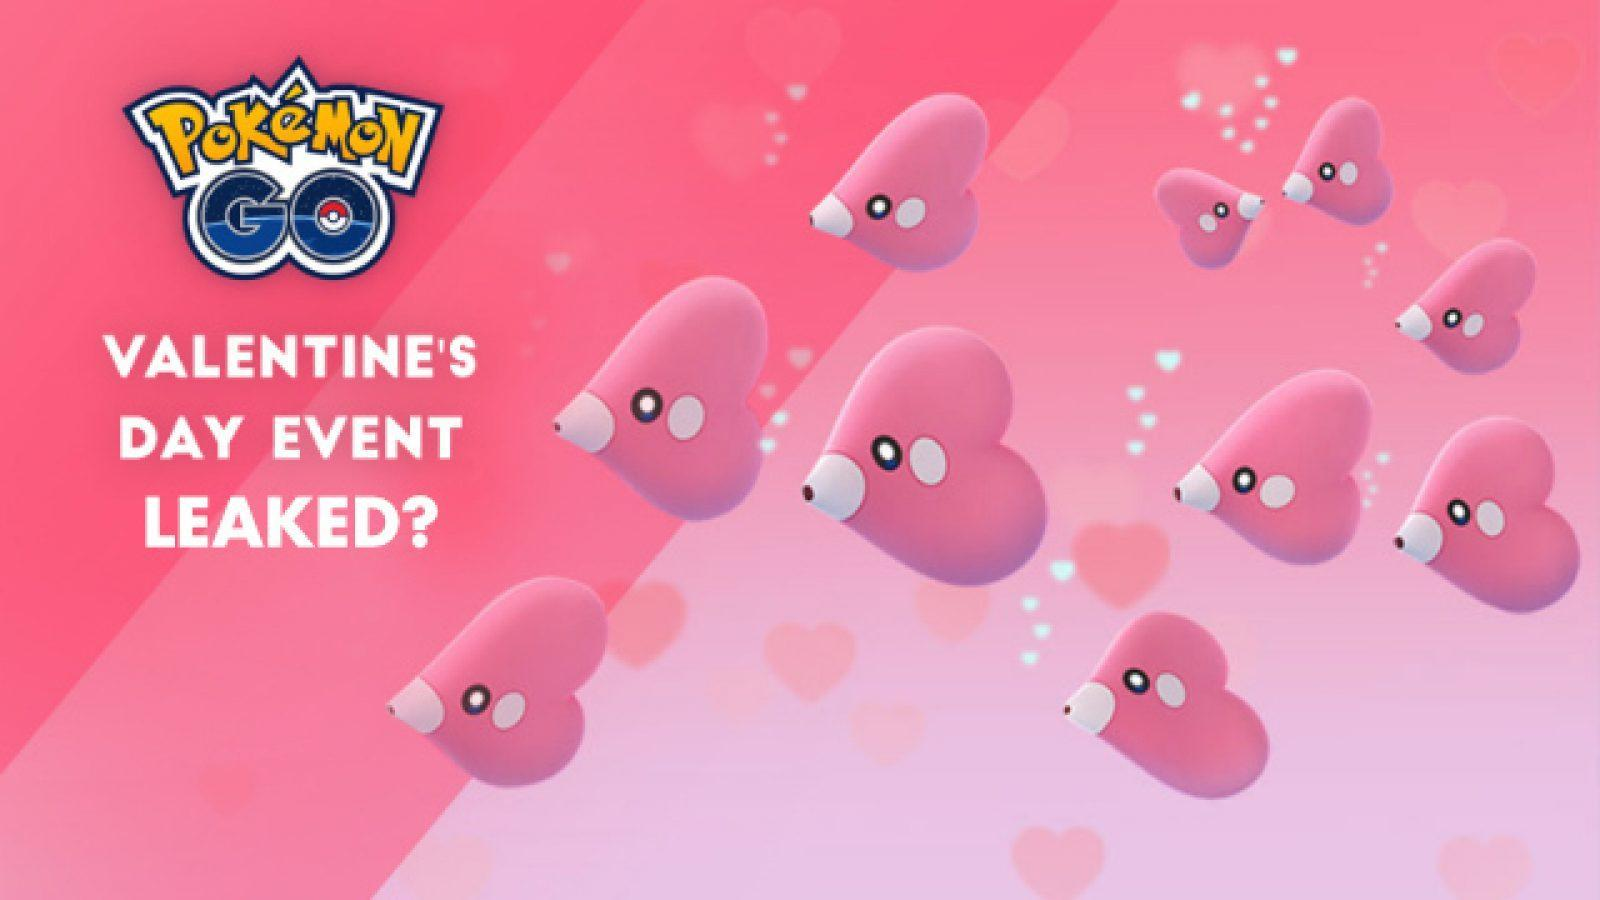 Pokemon-Go-Valentines-Event-Leaked